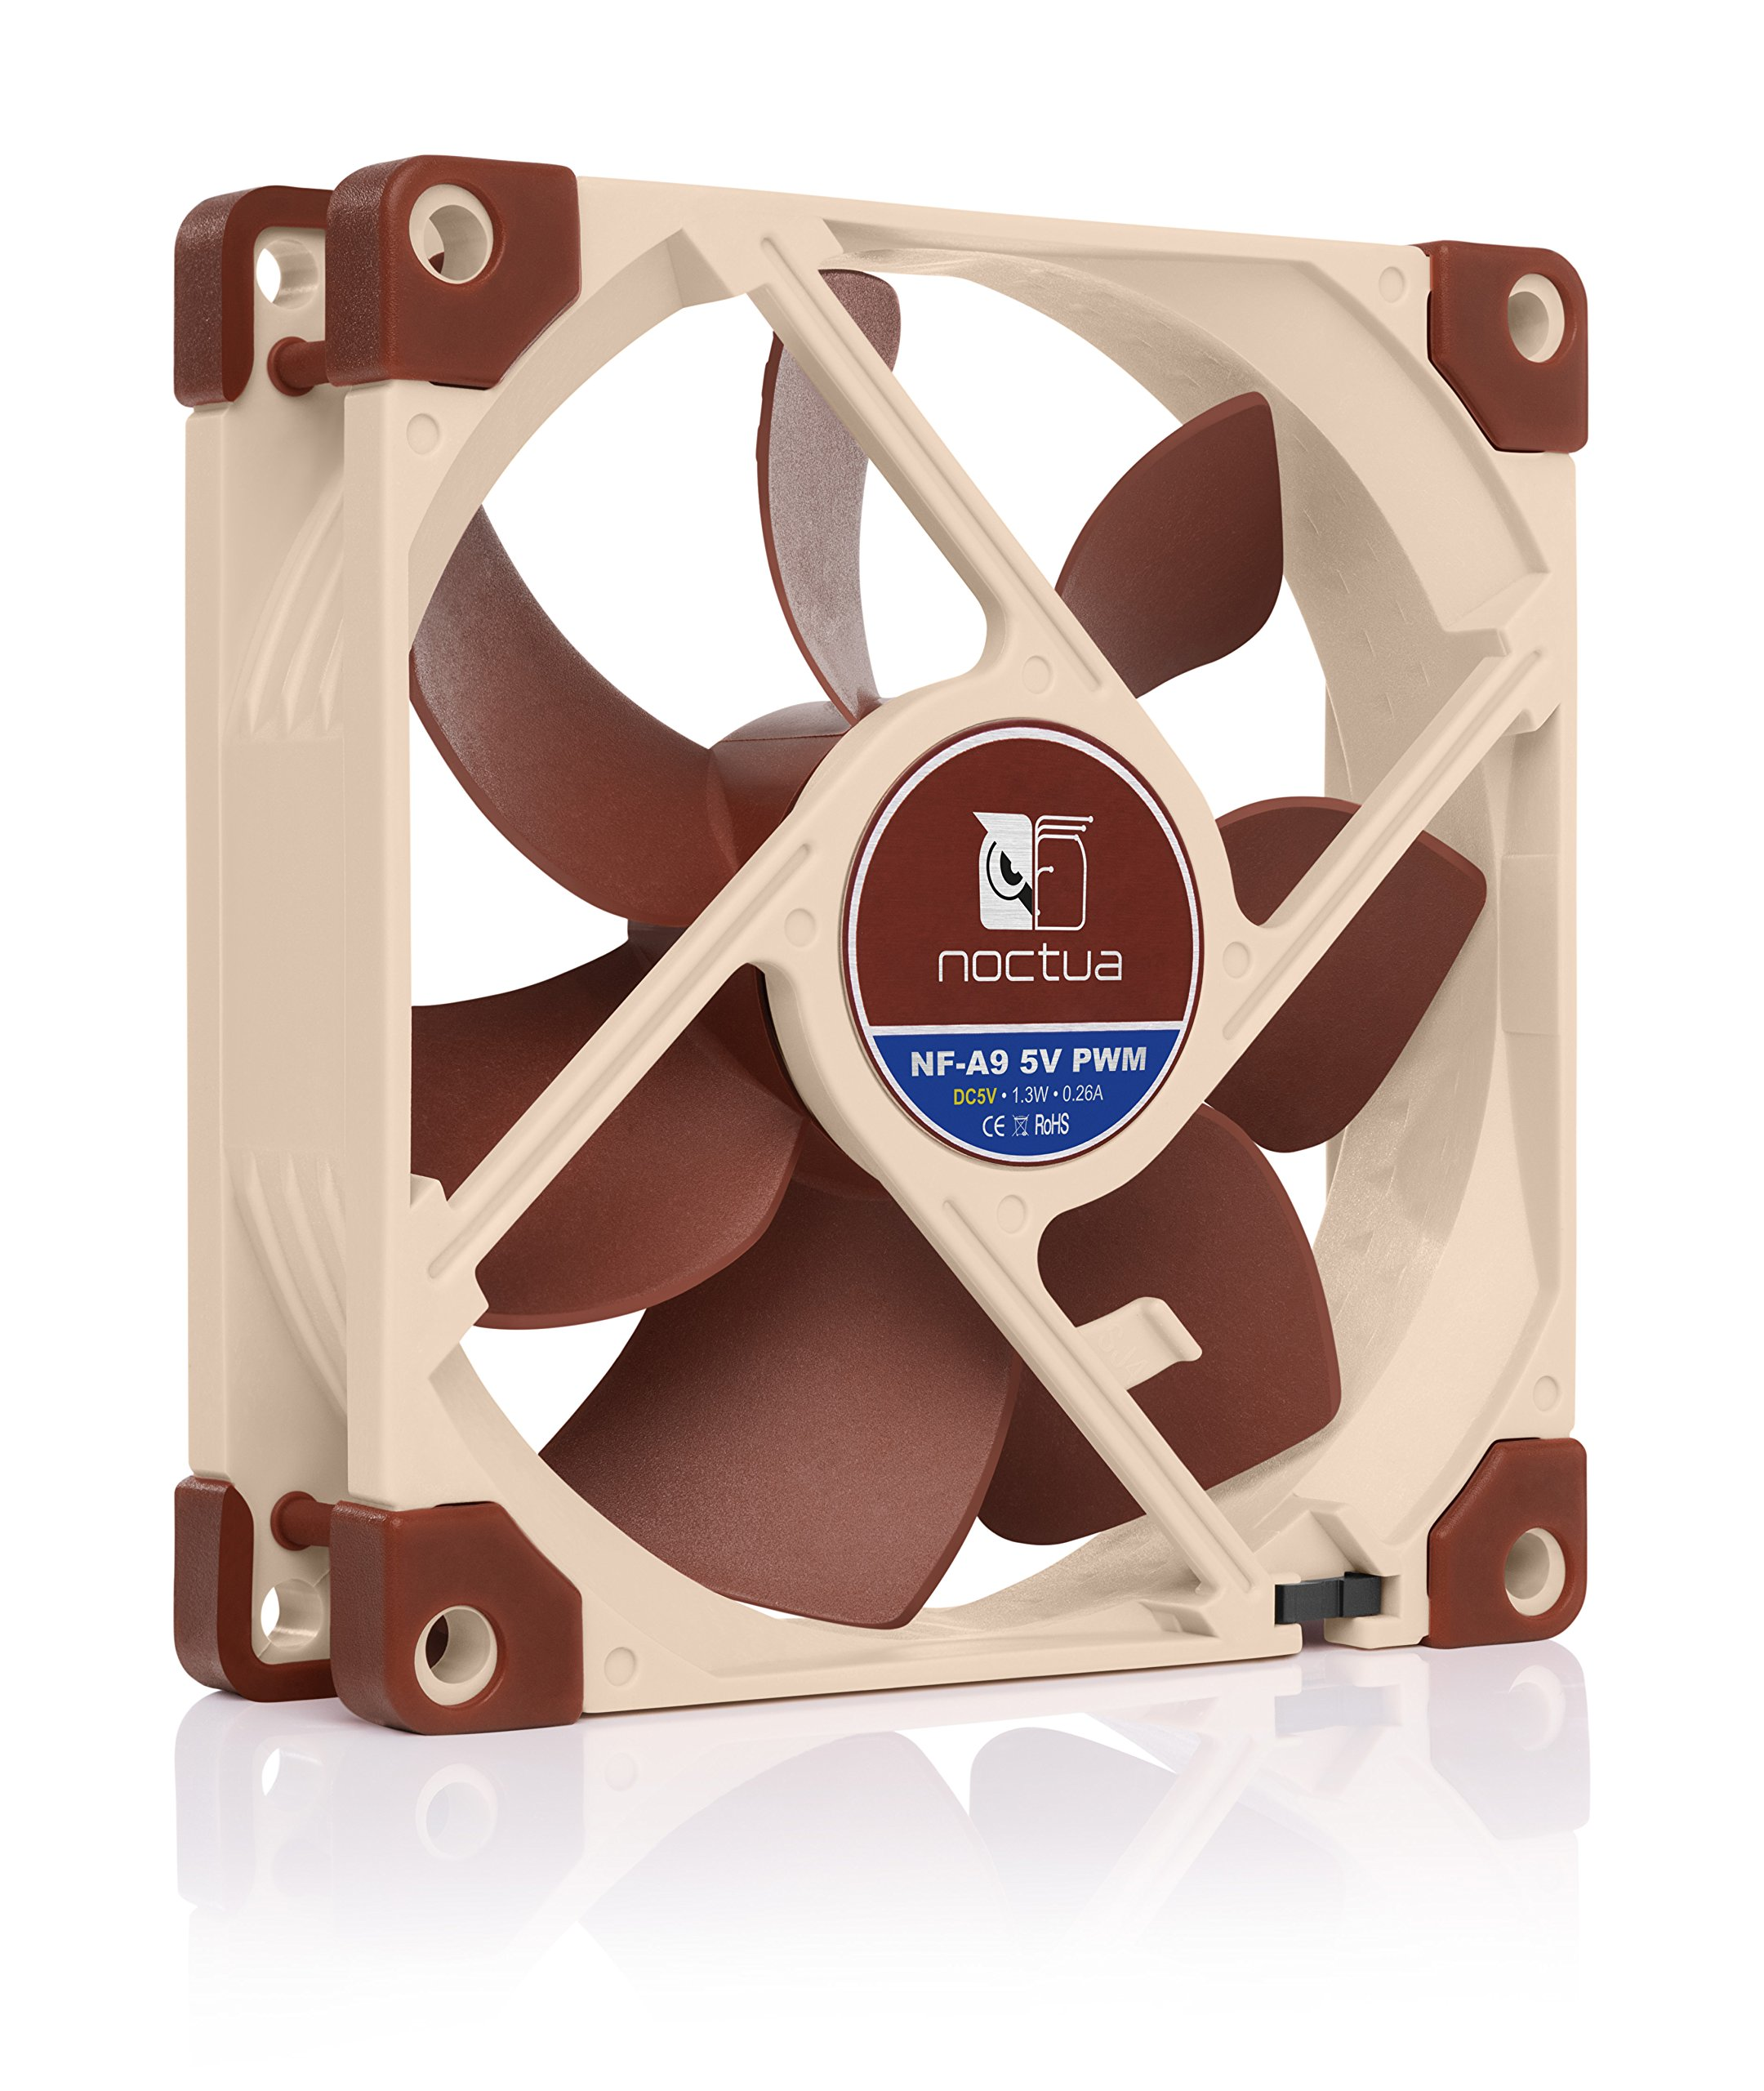 5V Version 92mm, Brown Noctua NF-A9 5V Premium Quiet Fan with USB Power Adaptor Cable 3-Pin